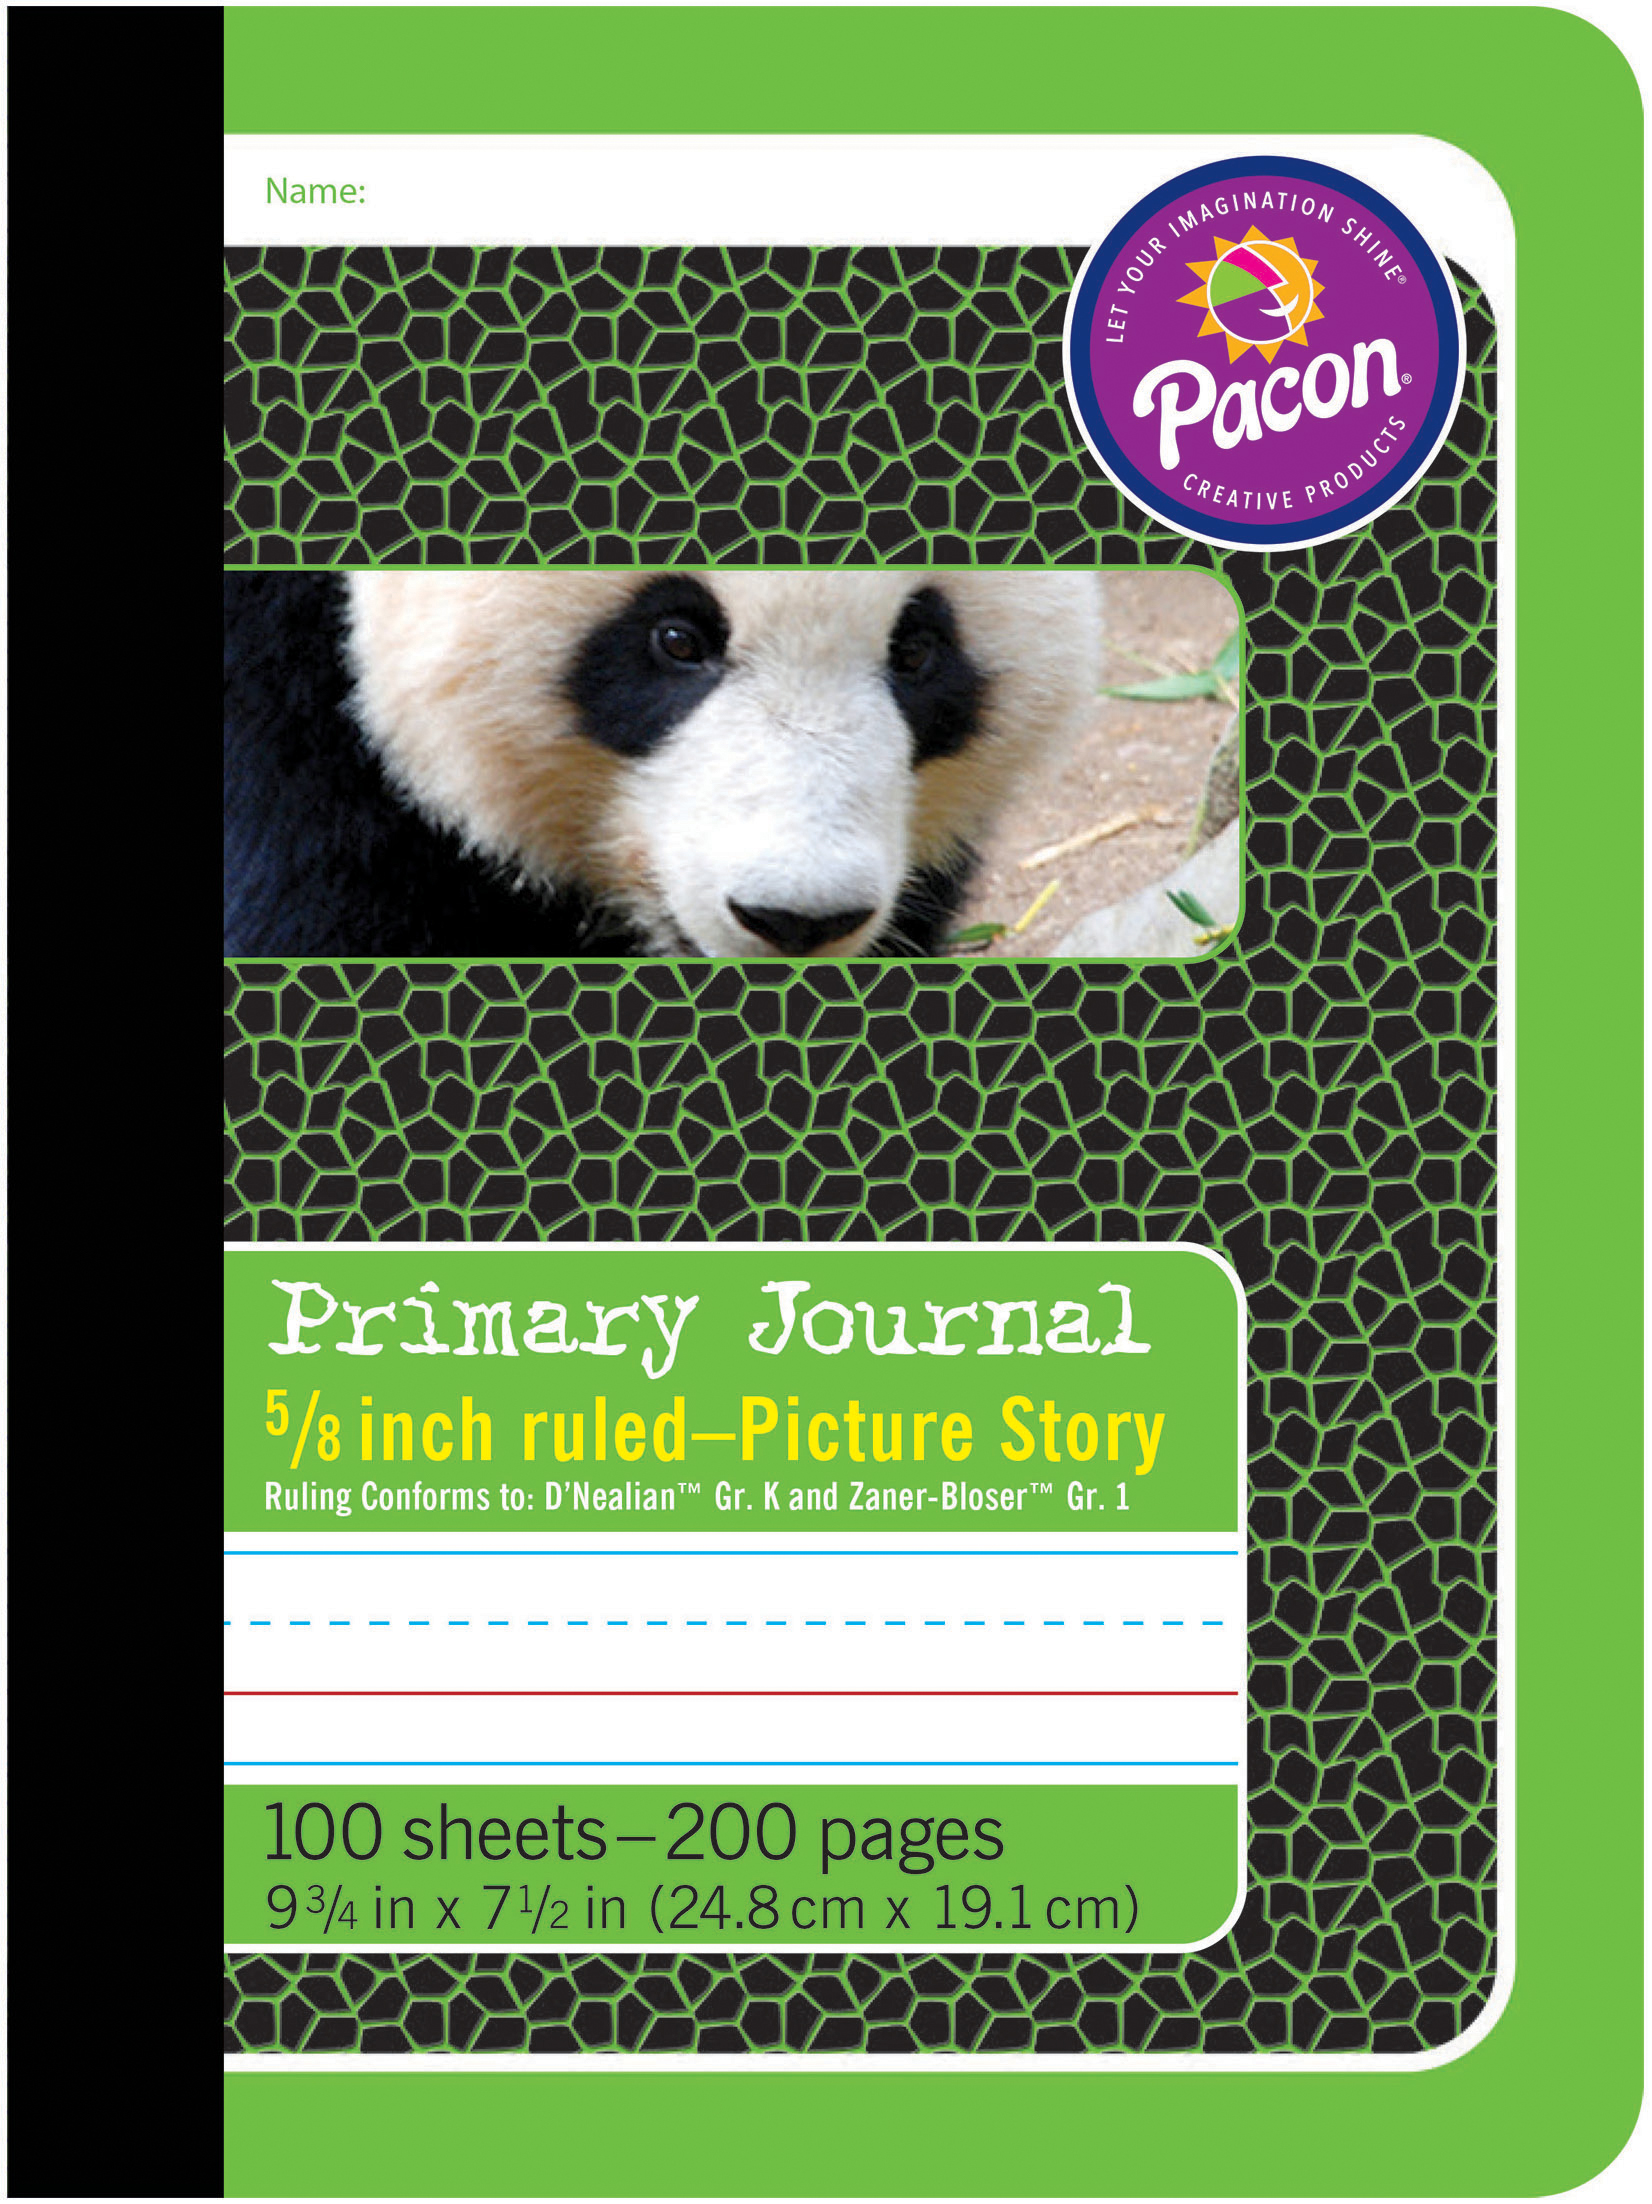 Pacon Composition Books 9.75X7.5 100 Sheets-Green, .625 Ruled